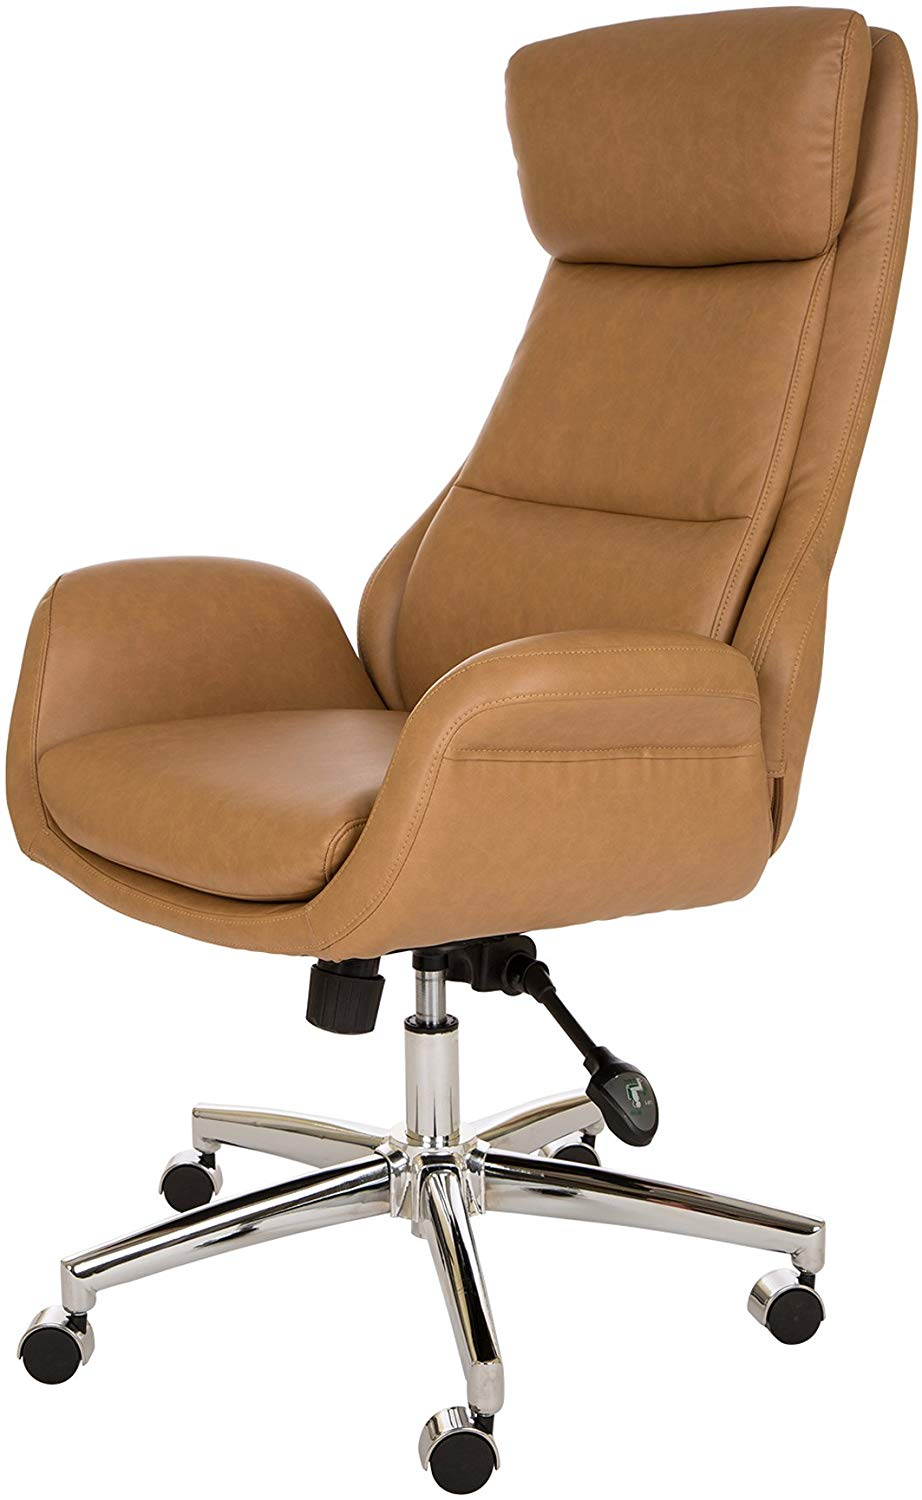 Glitzhome Adjustable HighBack Office Chair